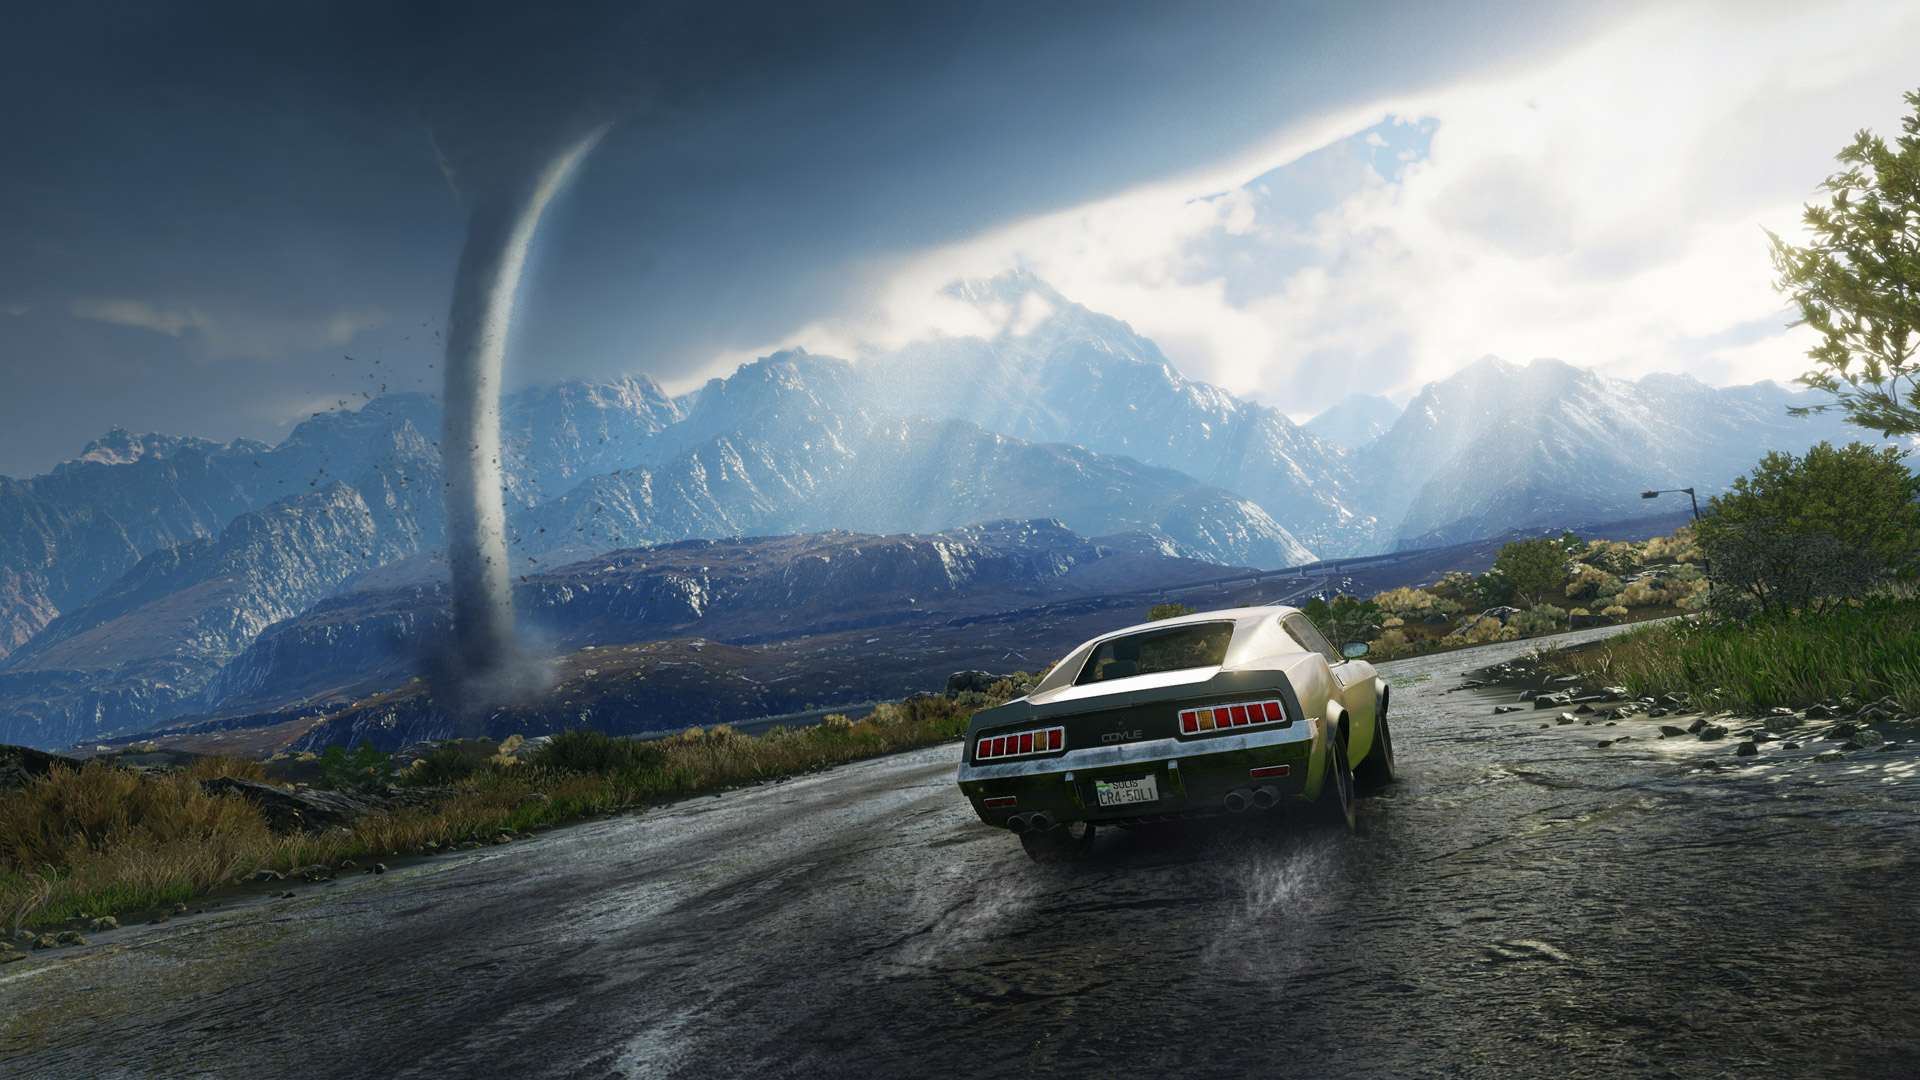 Free Just Cause 4 Wallpaper in 1920x1080